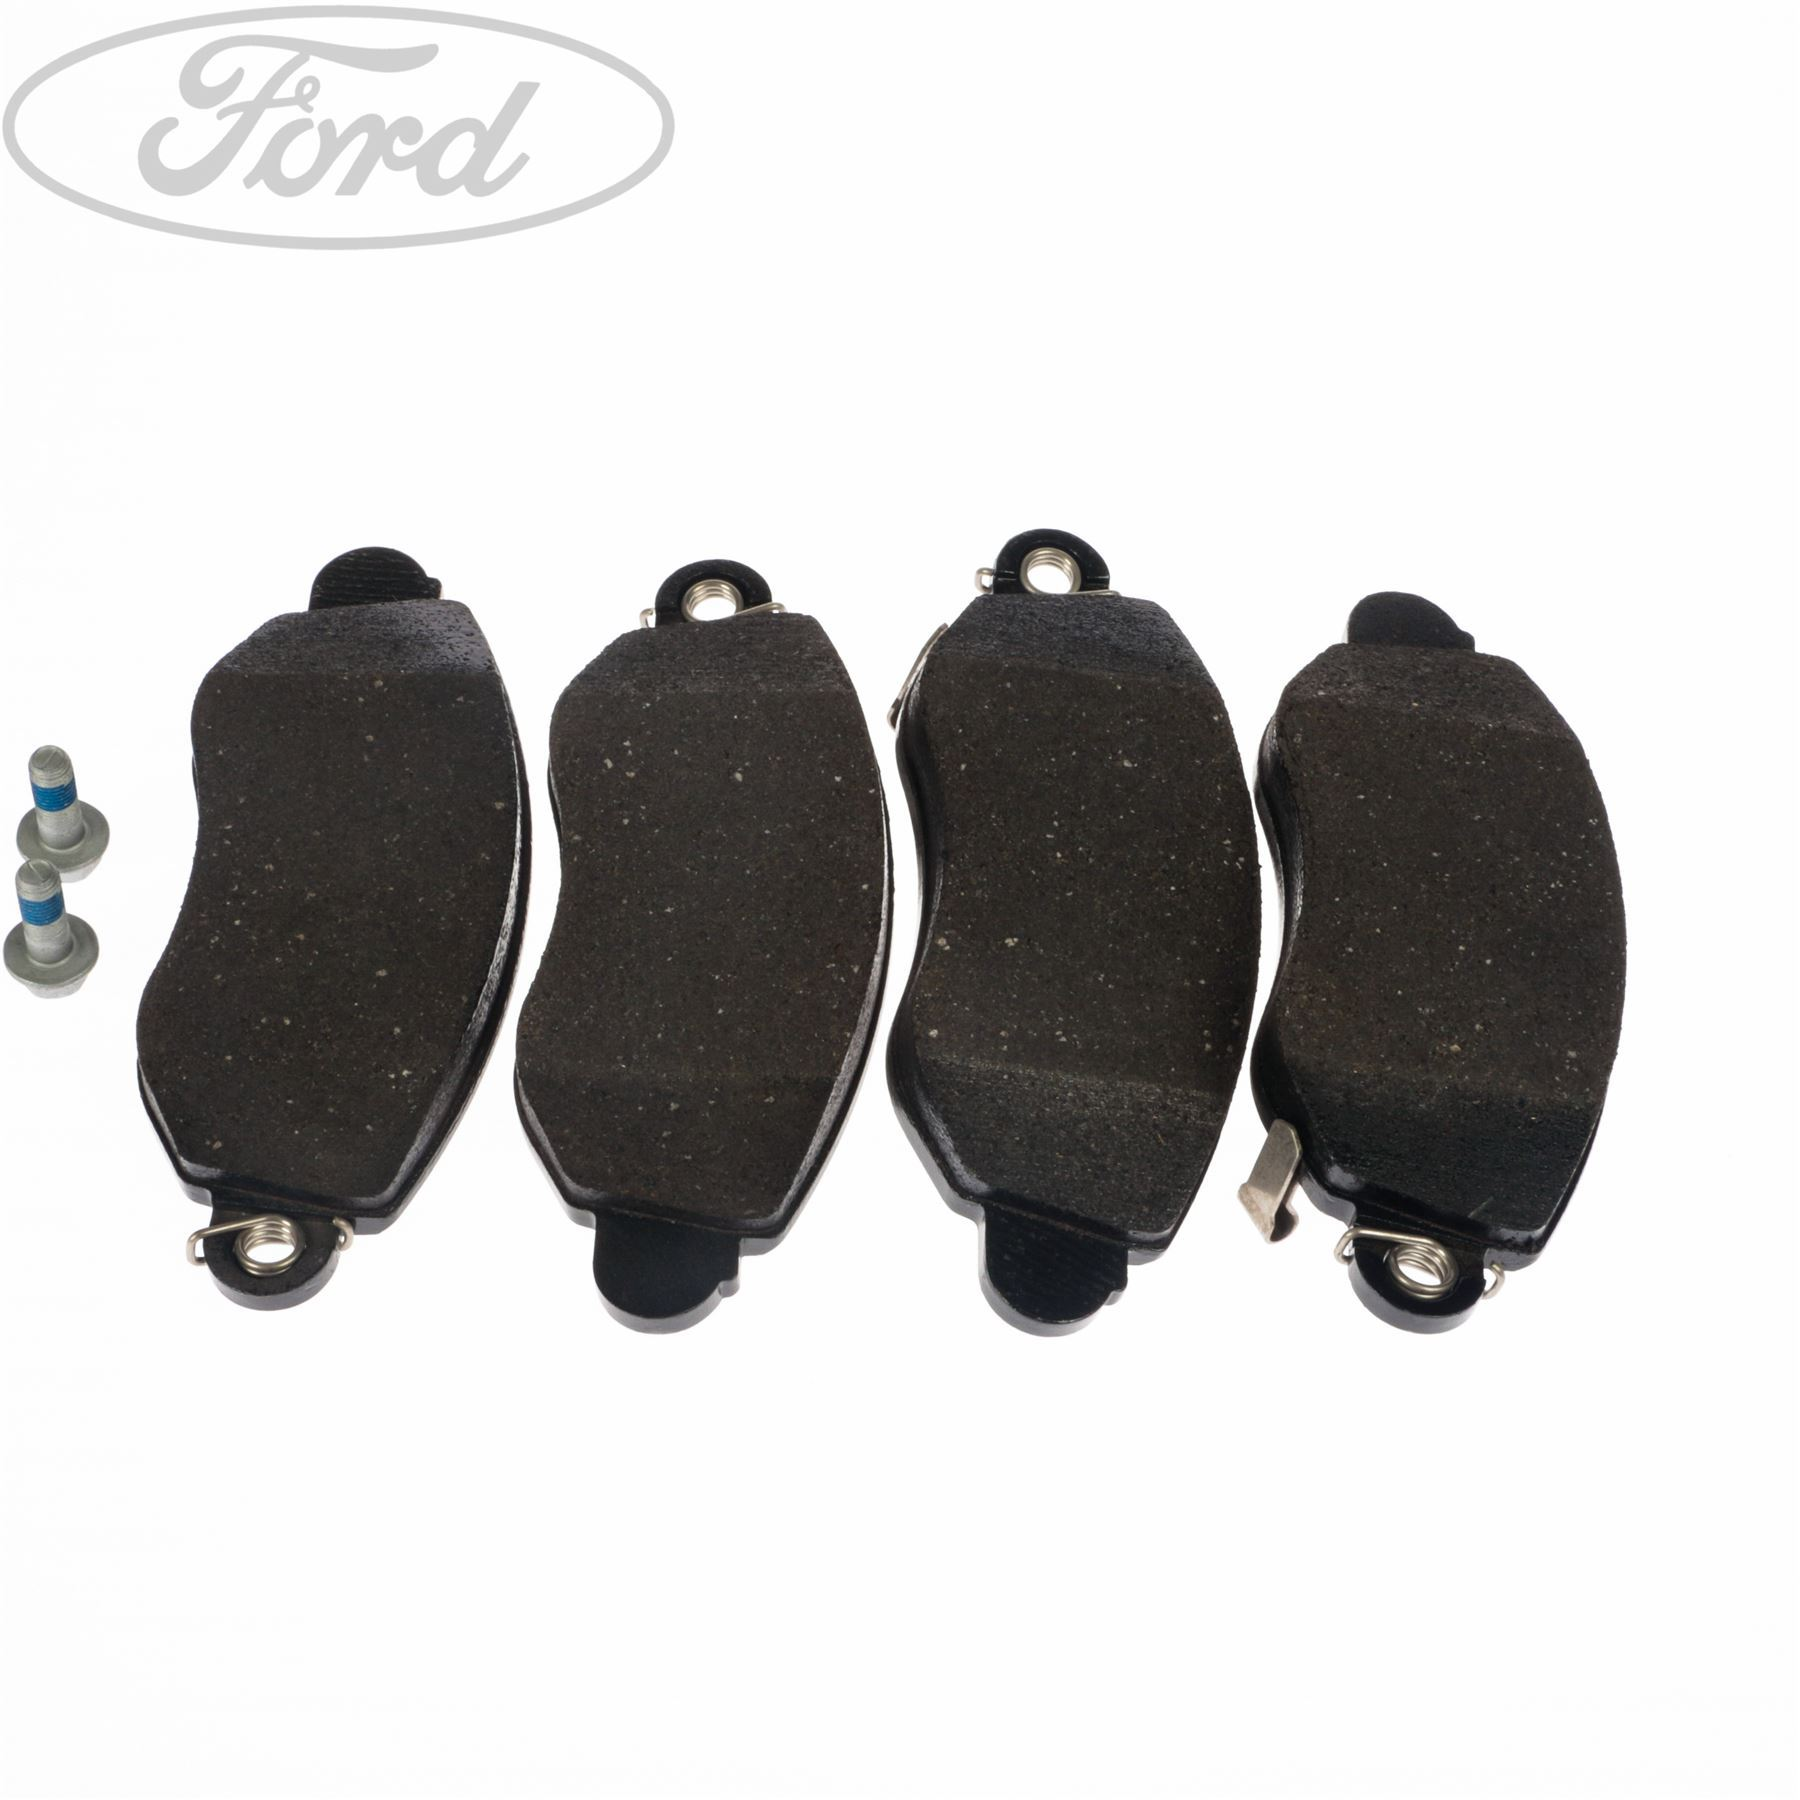 Genuine Ford Transit Mk6 Motorcraft Front Brake Pad Set 2000 2006 Fuse Box 1465166